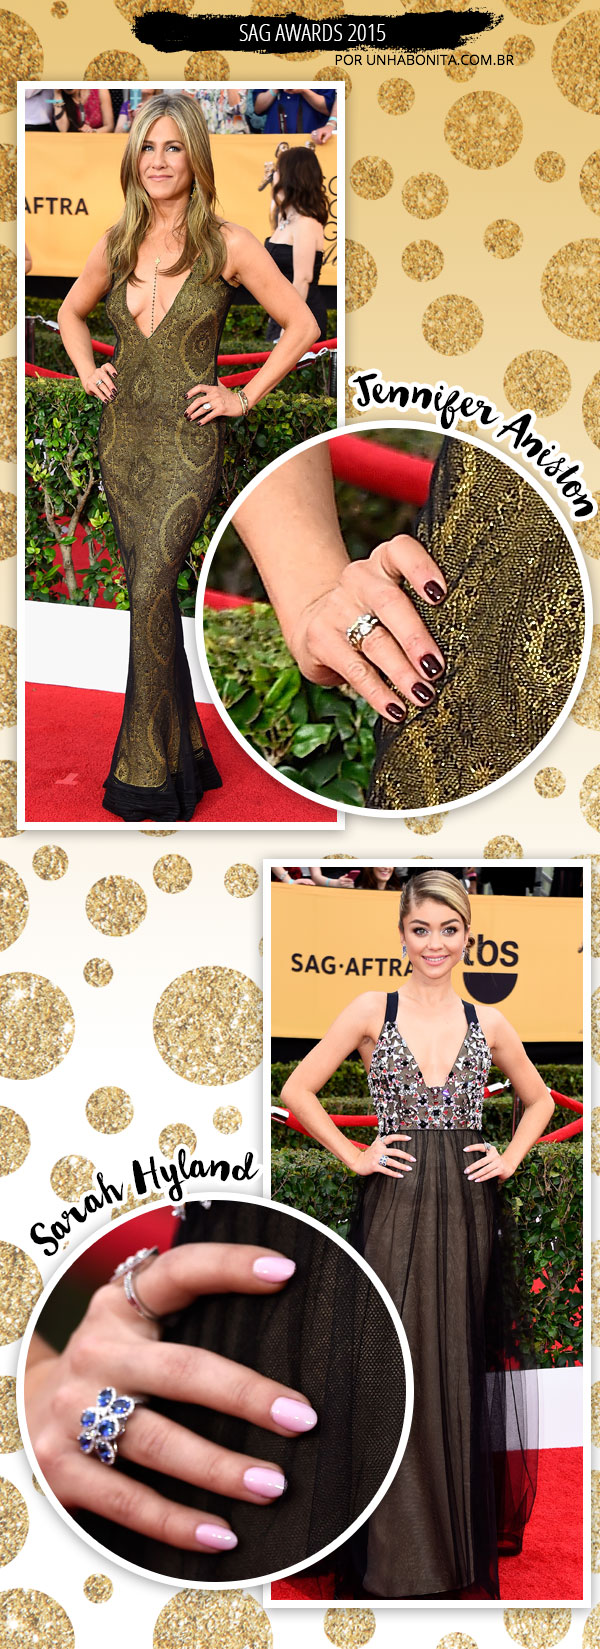 sag-awards-manicure-unhas-esmaltes-2015 jennifer aniston sarah hyland